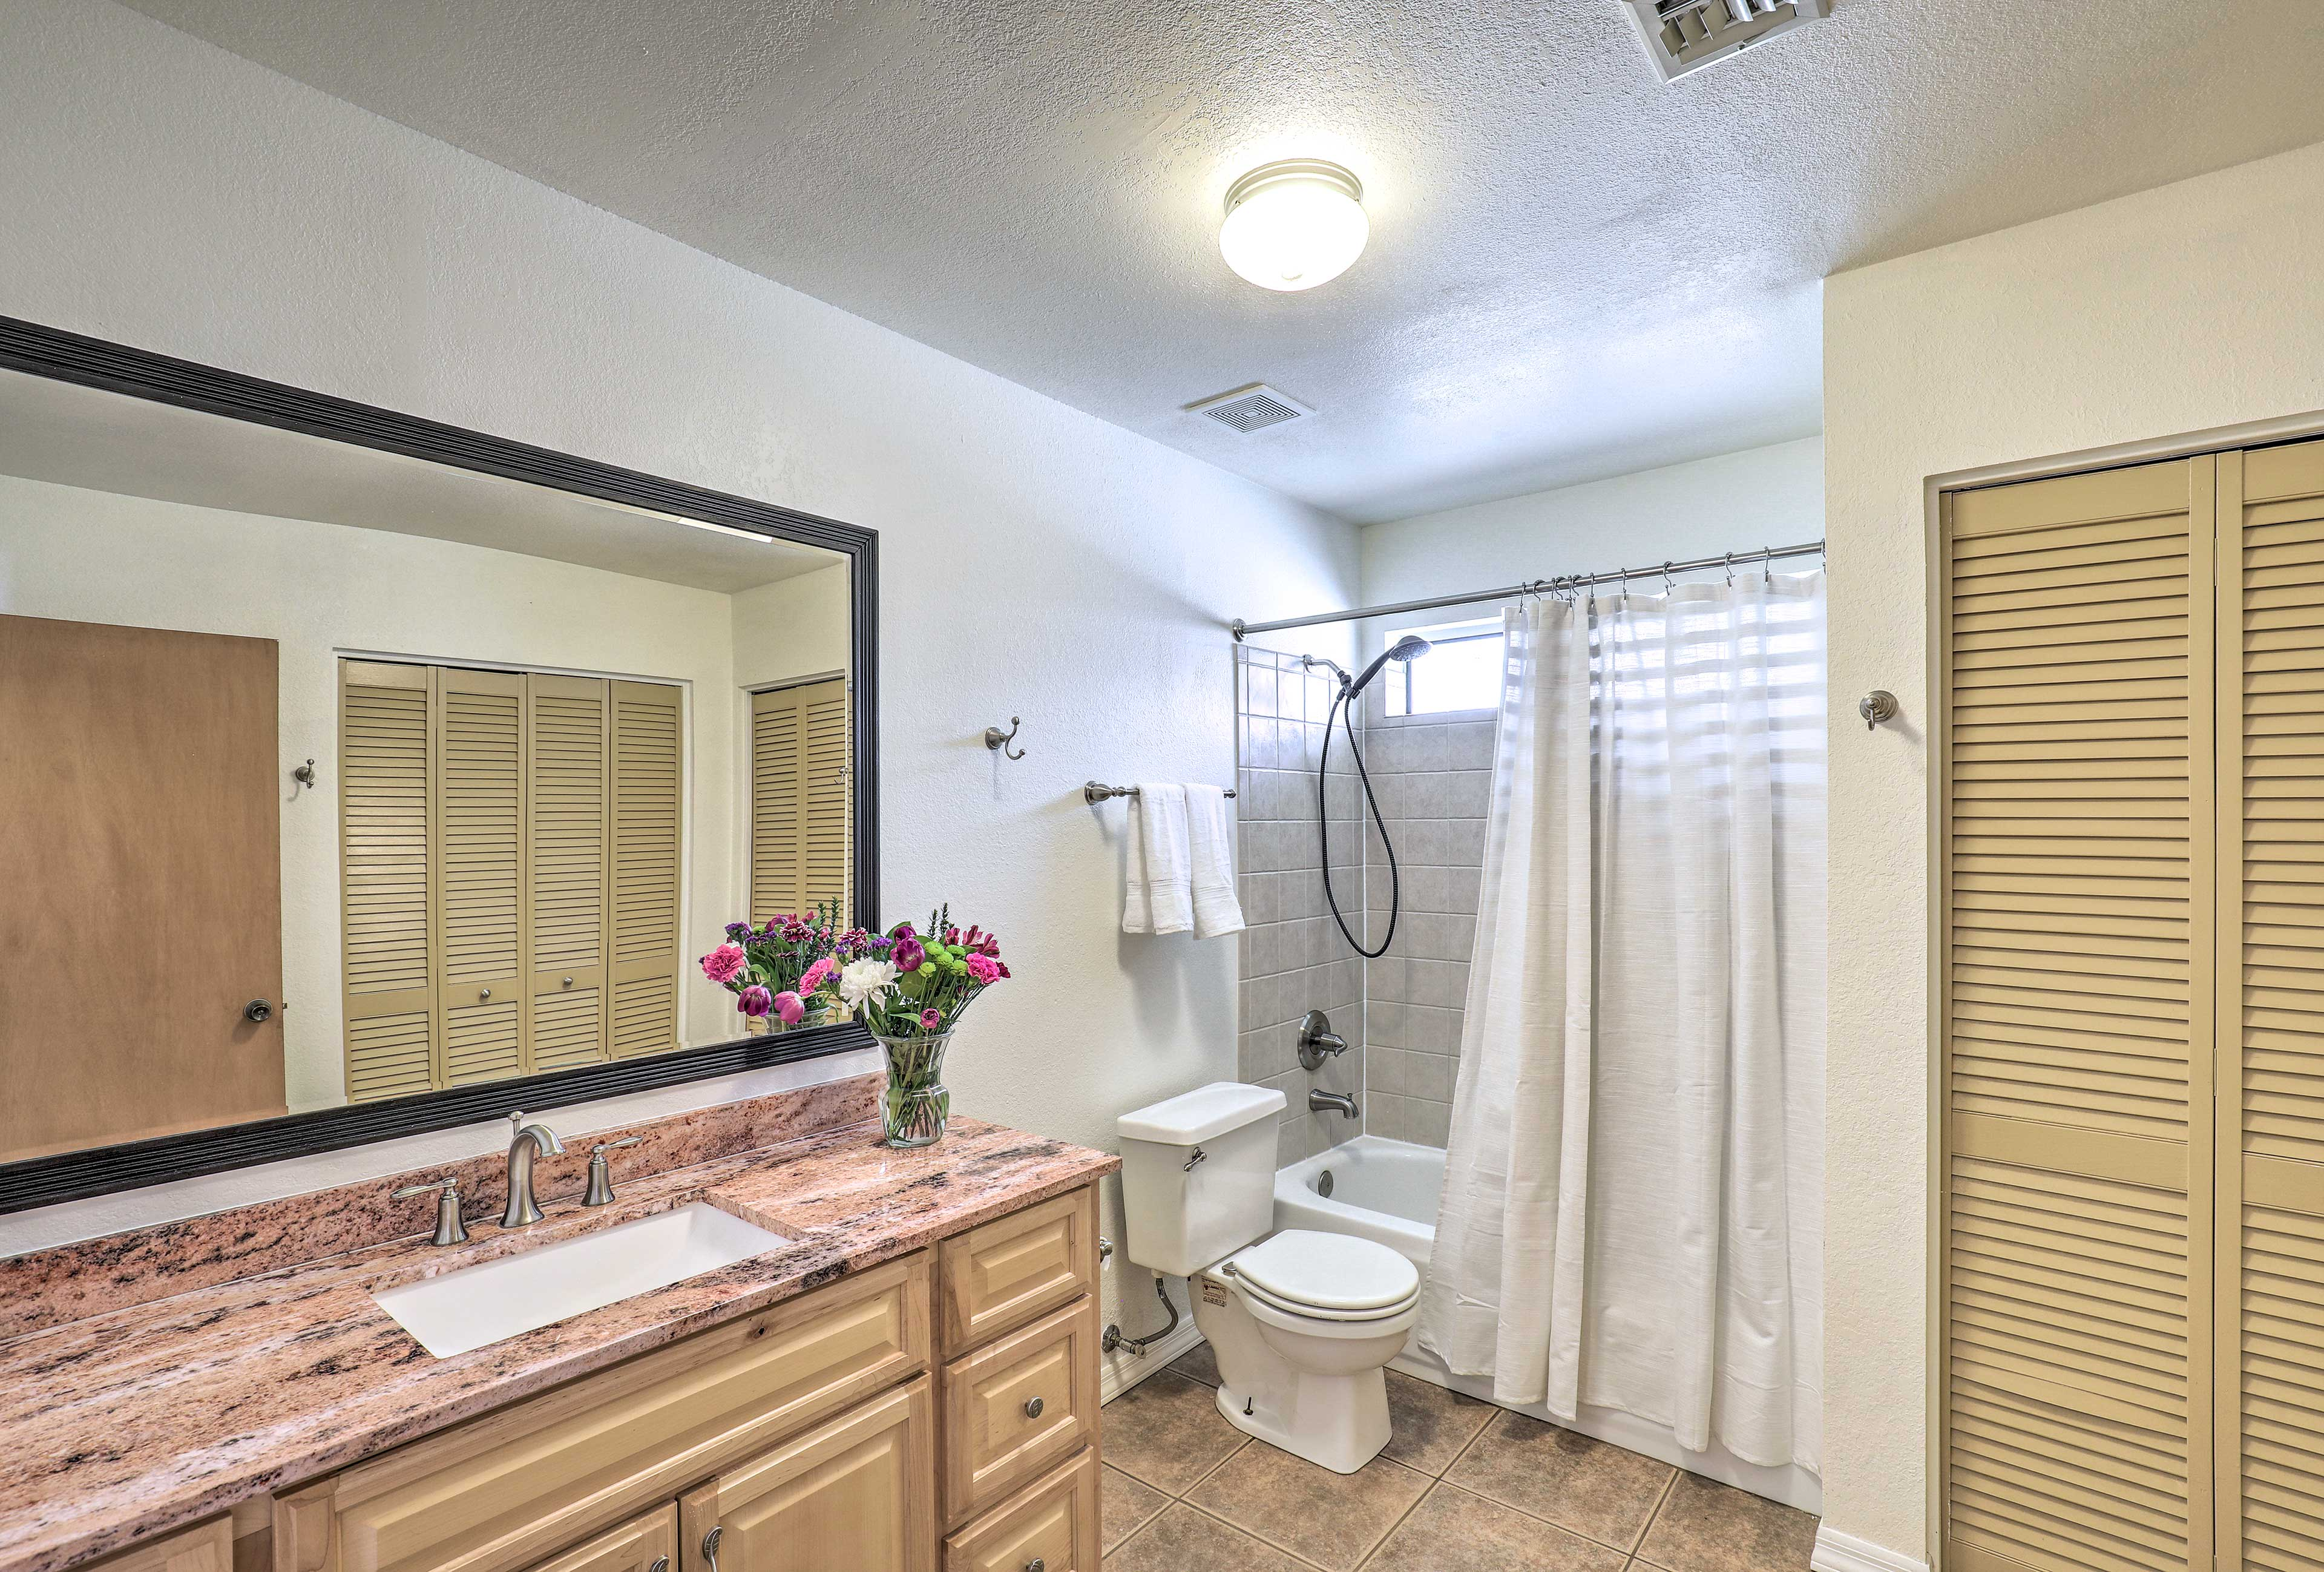 Spread your toiletries out on the spacious counter to get ready with ease.